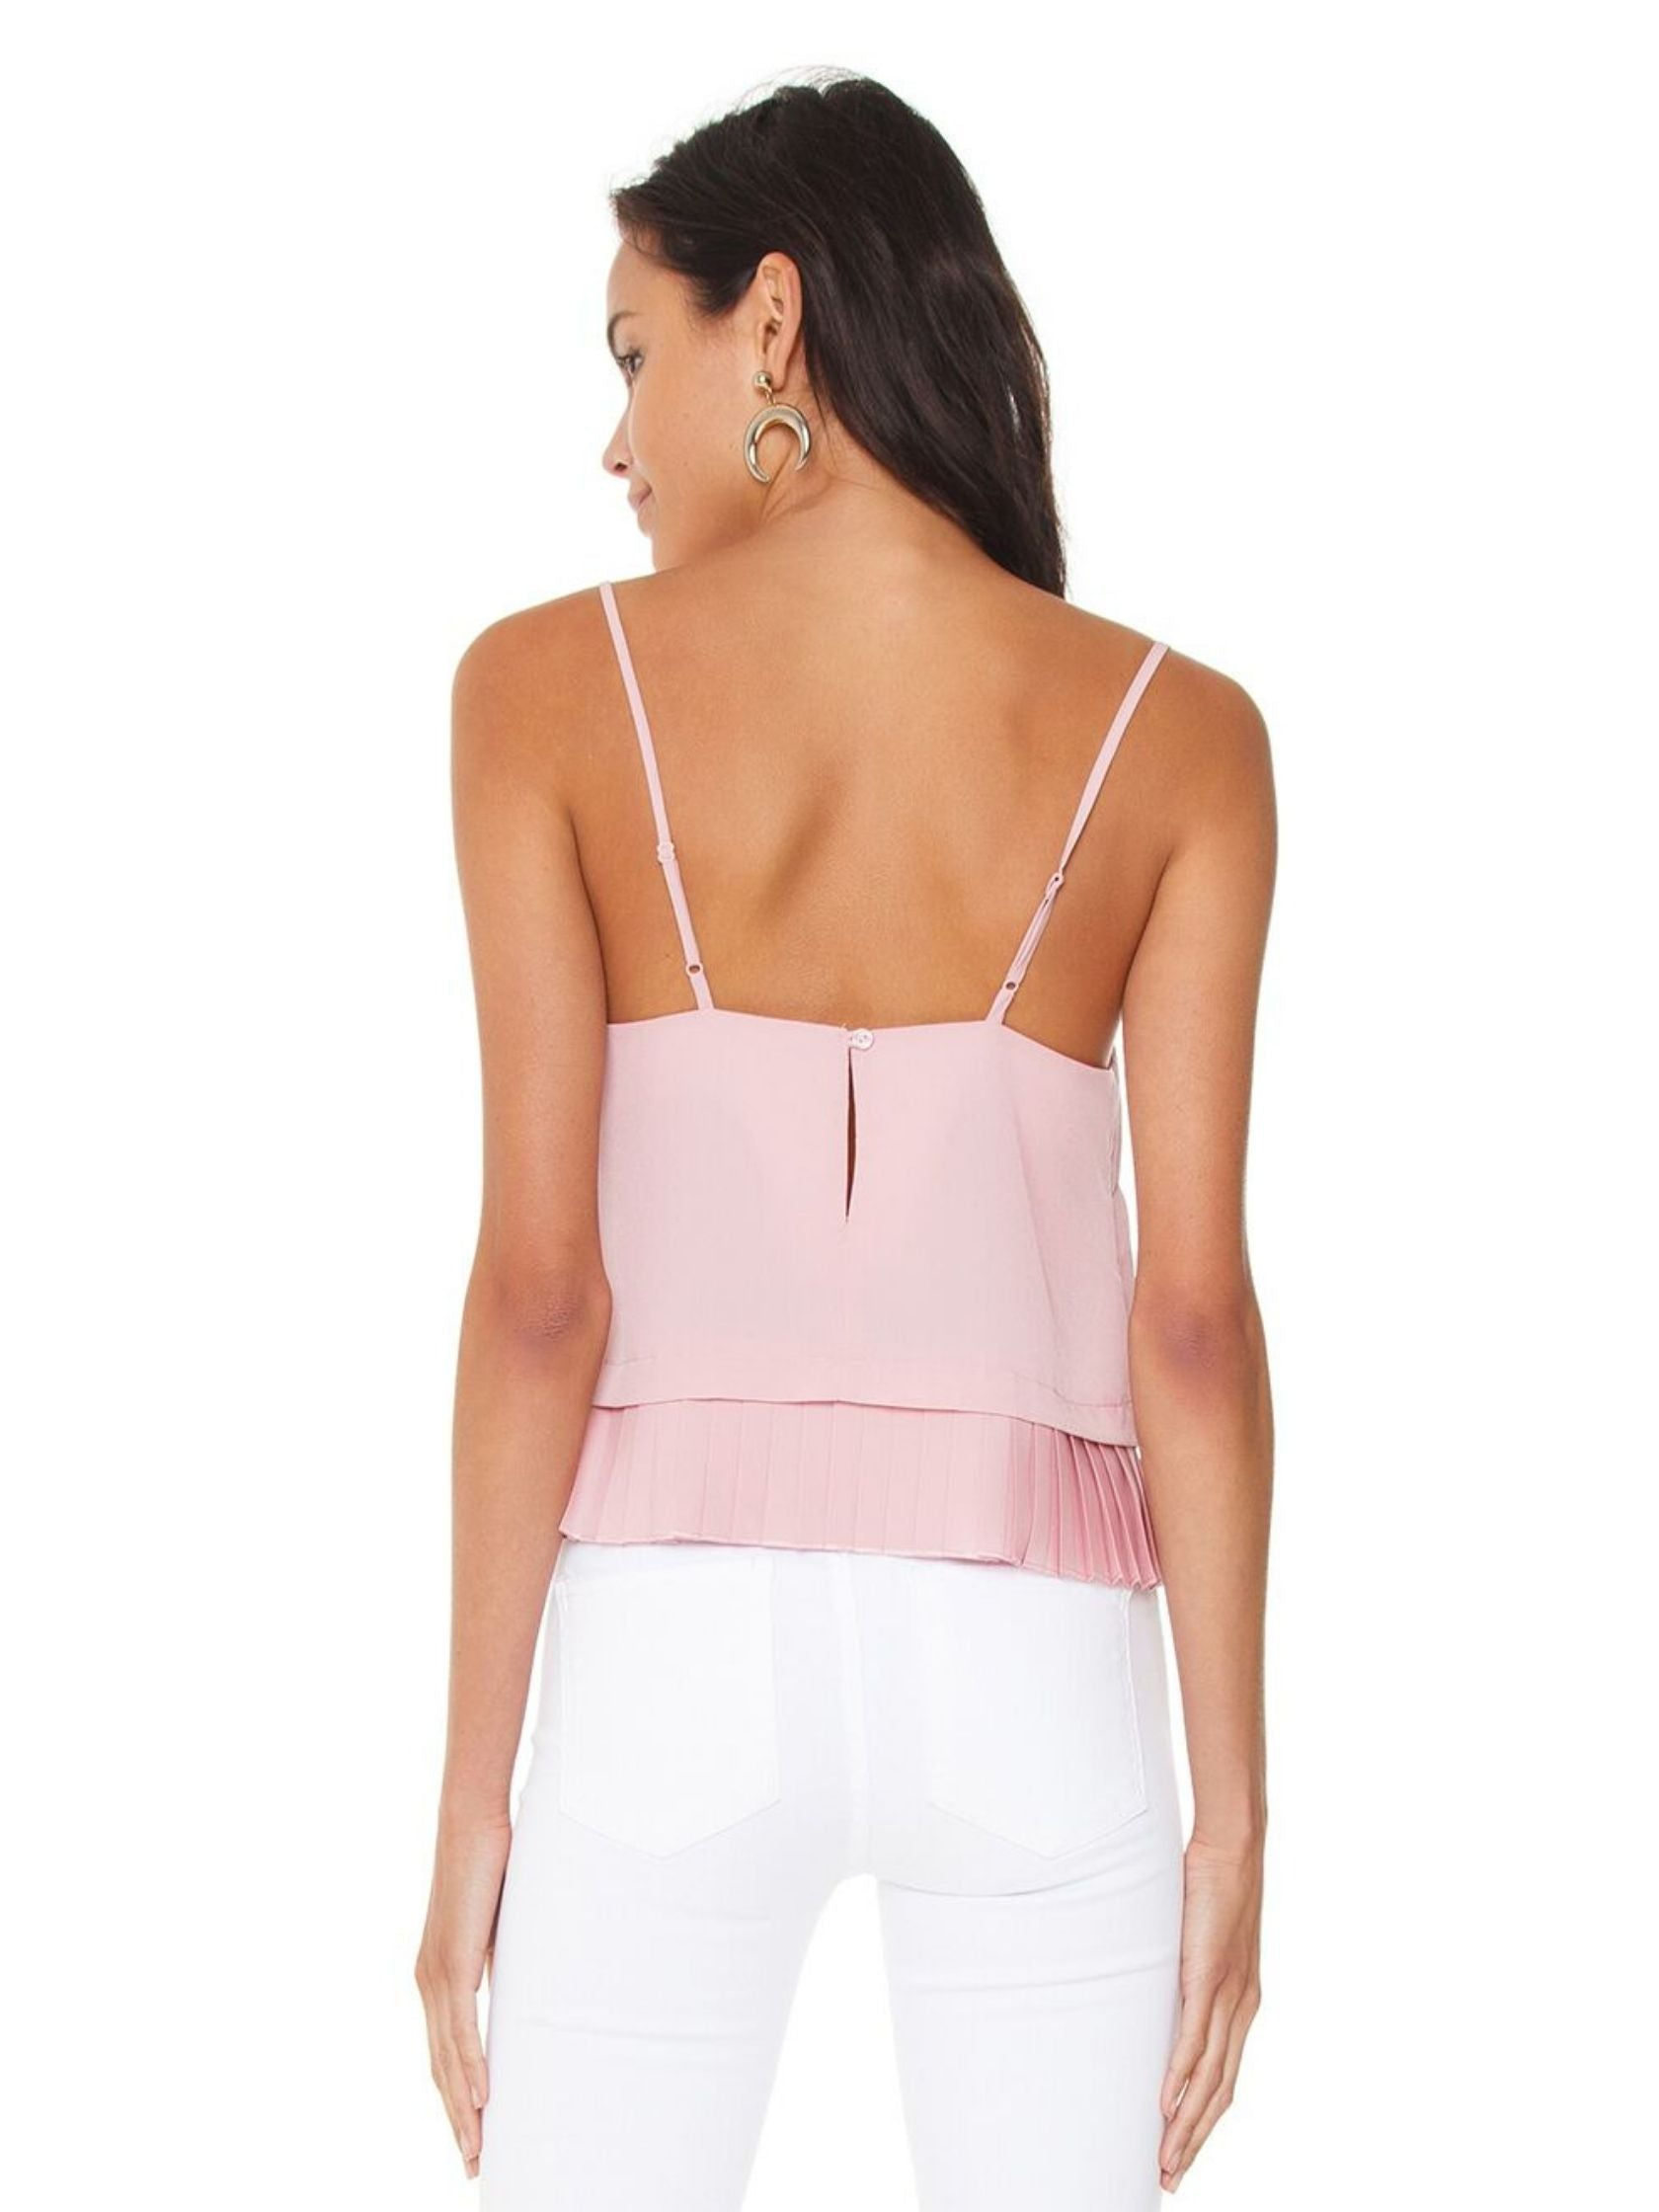 Women wearing a top rental from French Connection called Classic Crepe Pleated Tank